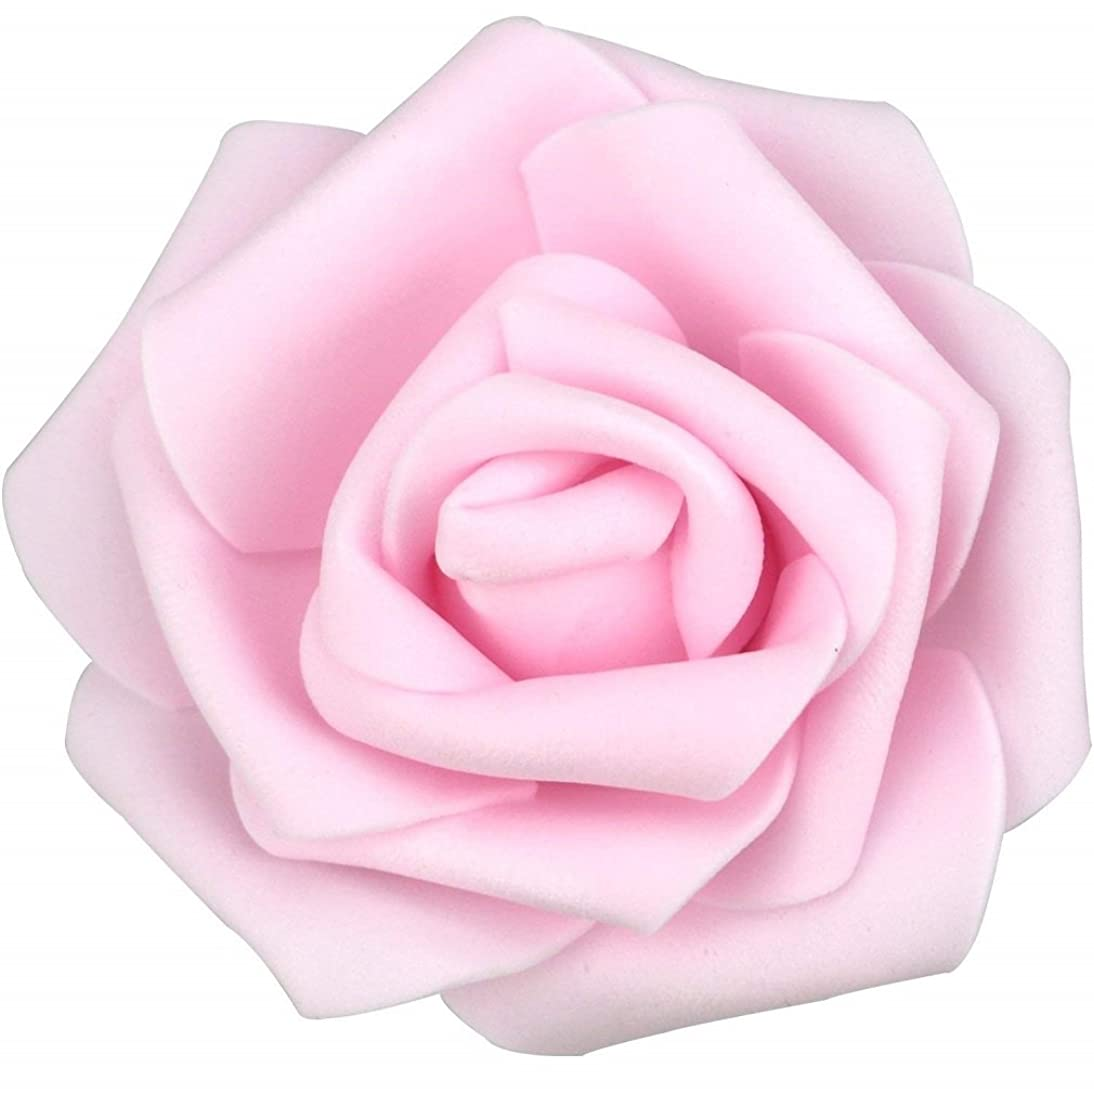 Artificial Foam Roses for DYI Bridal Wedding Bouquet or Home Garden Party Floral Decor 25 pcs (Pink)